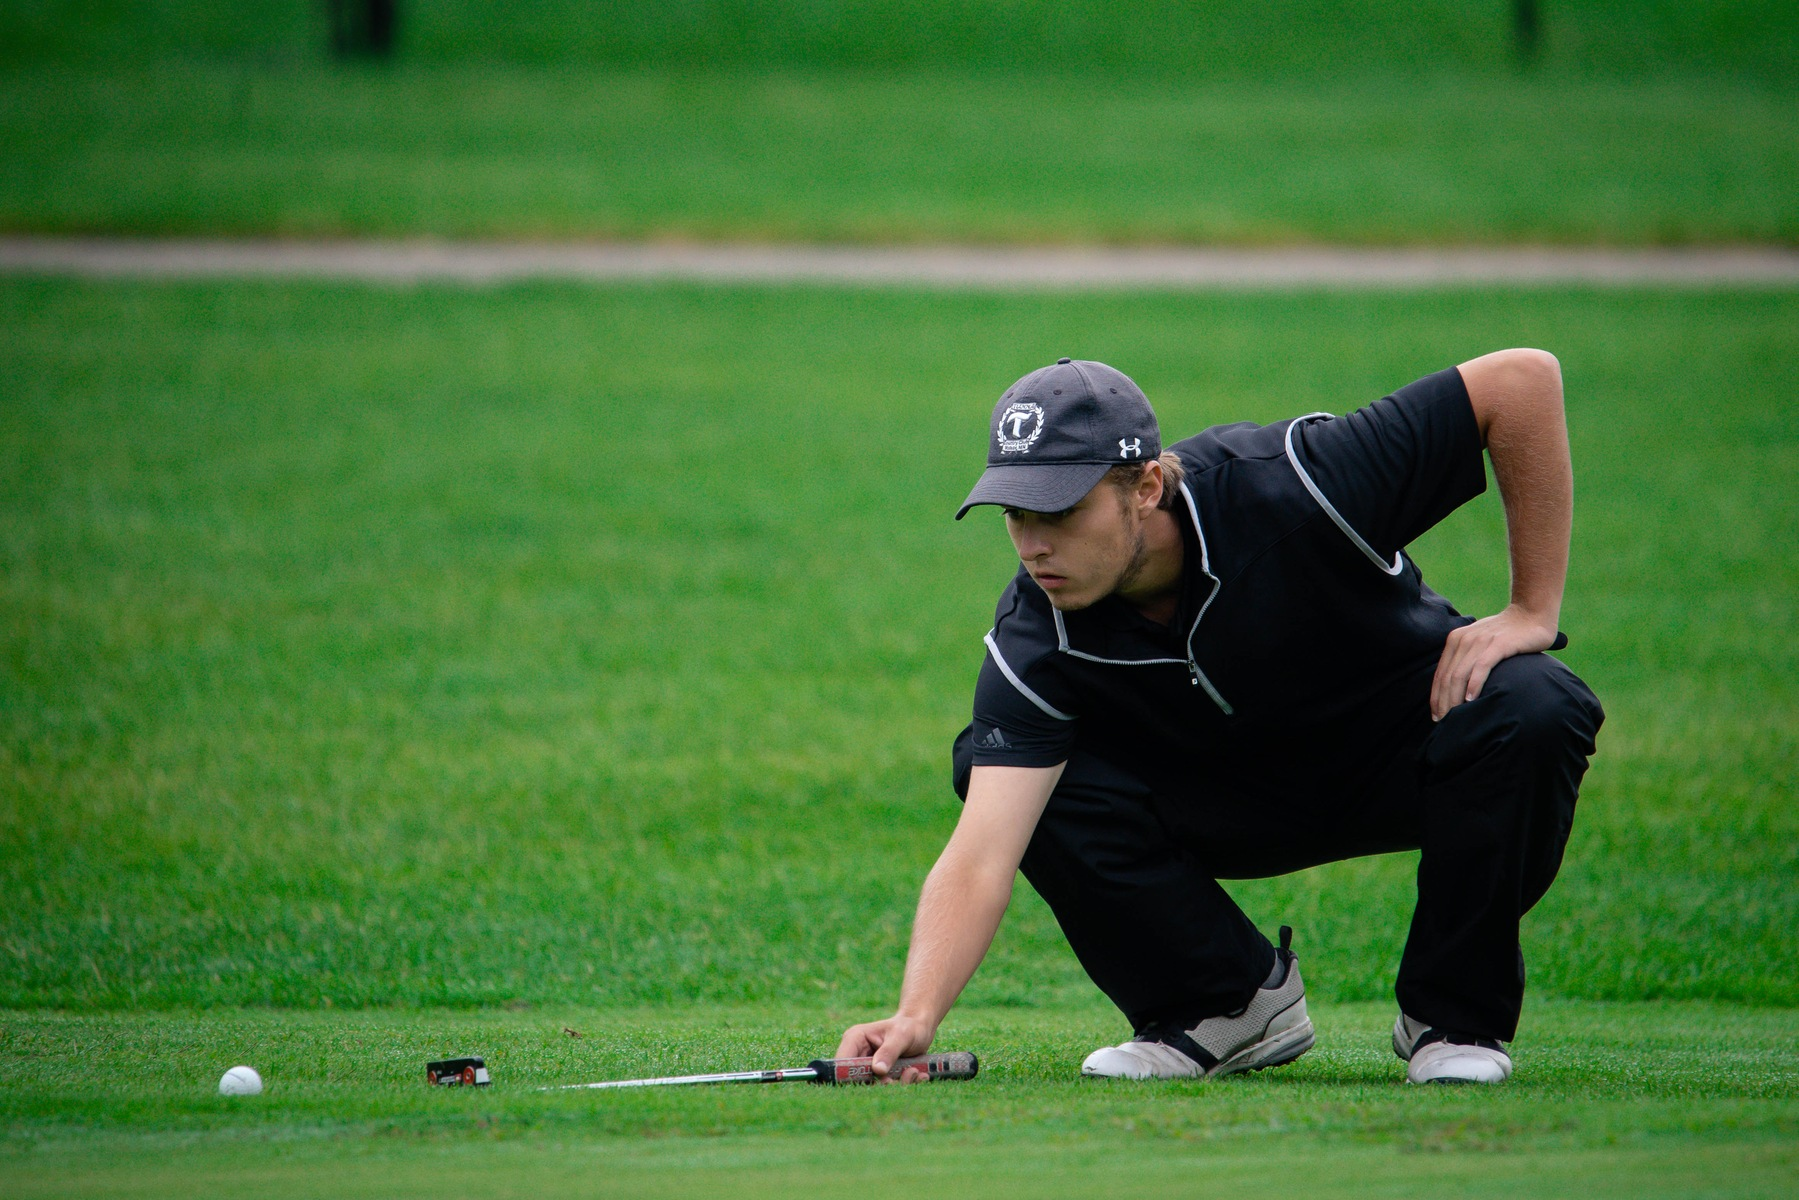 Epperly, KCC golfers shine at NJCAA National Preview